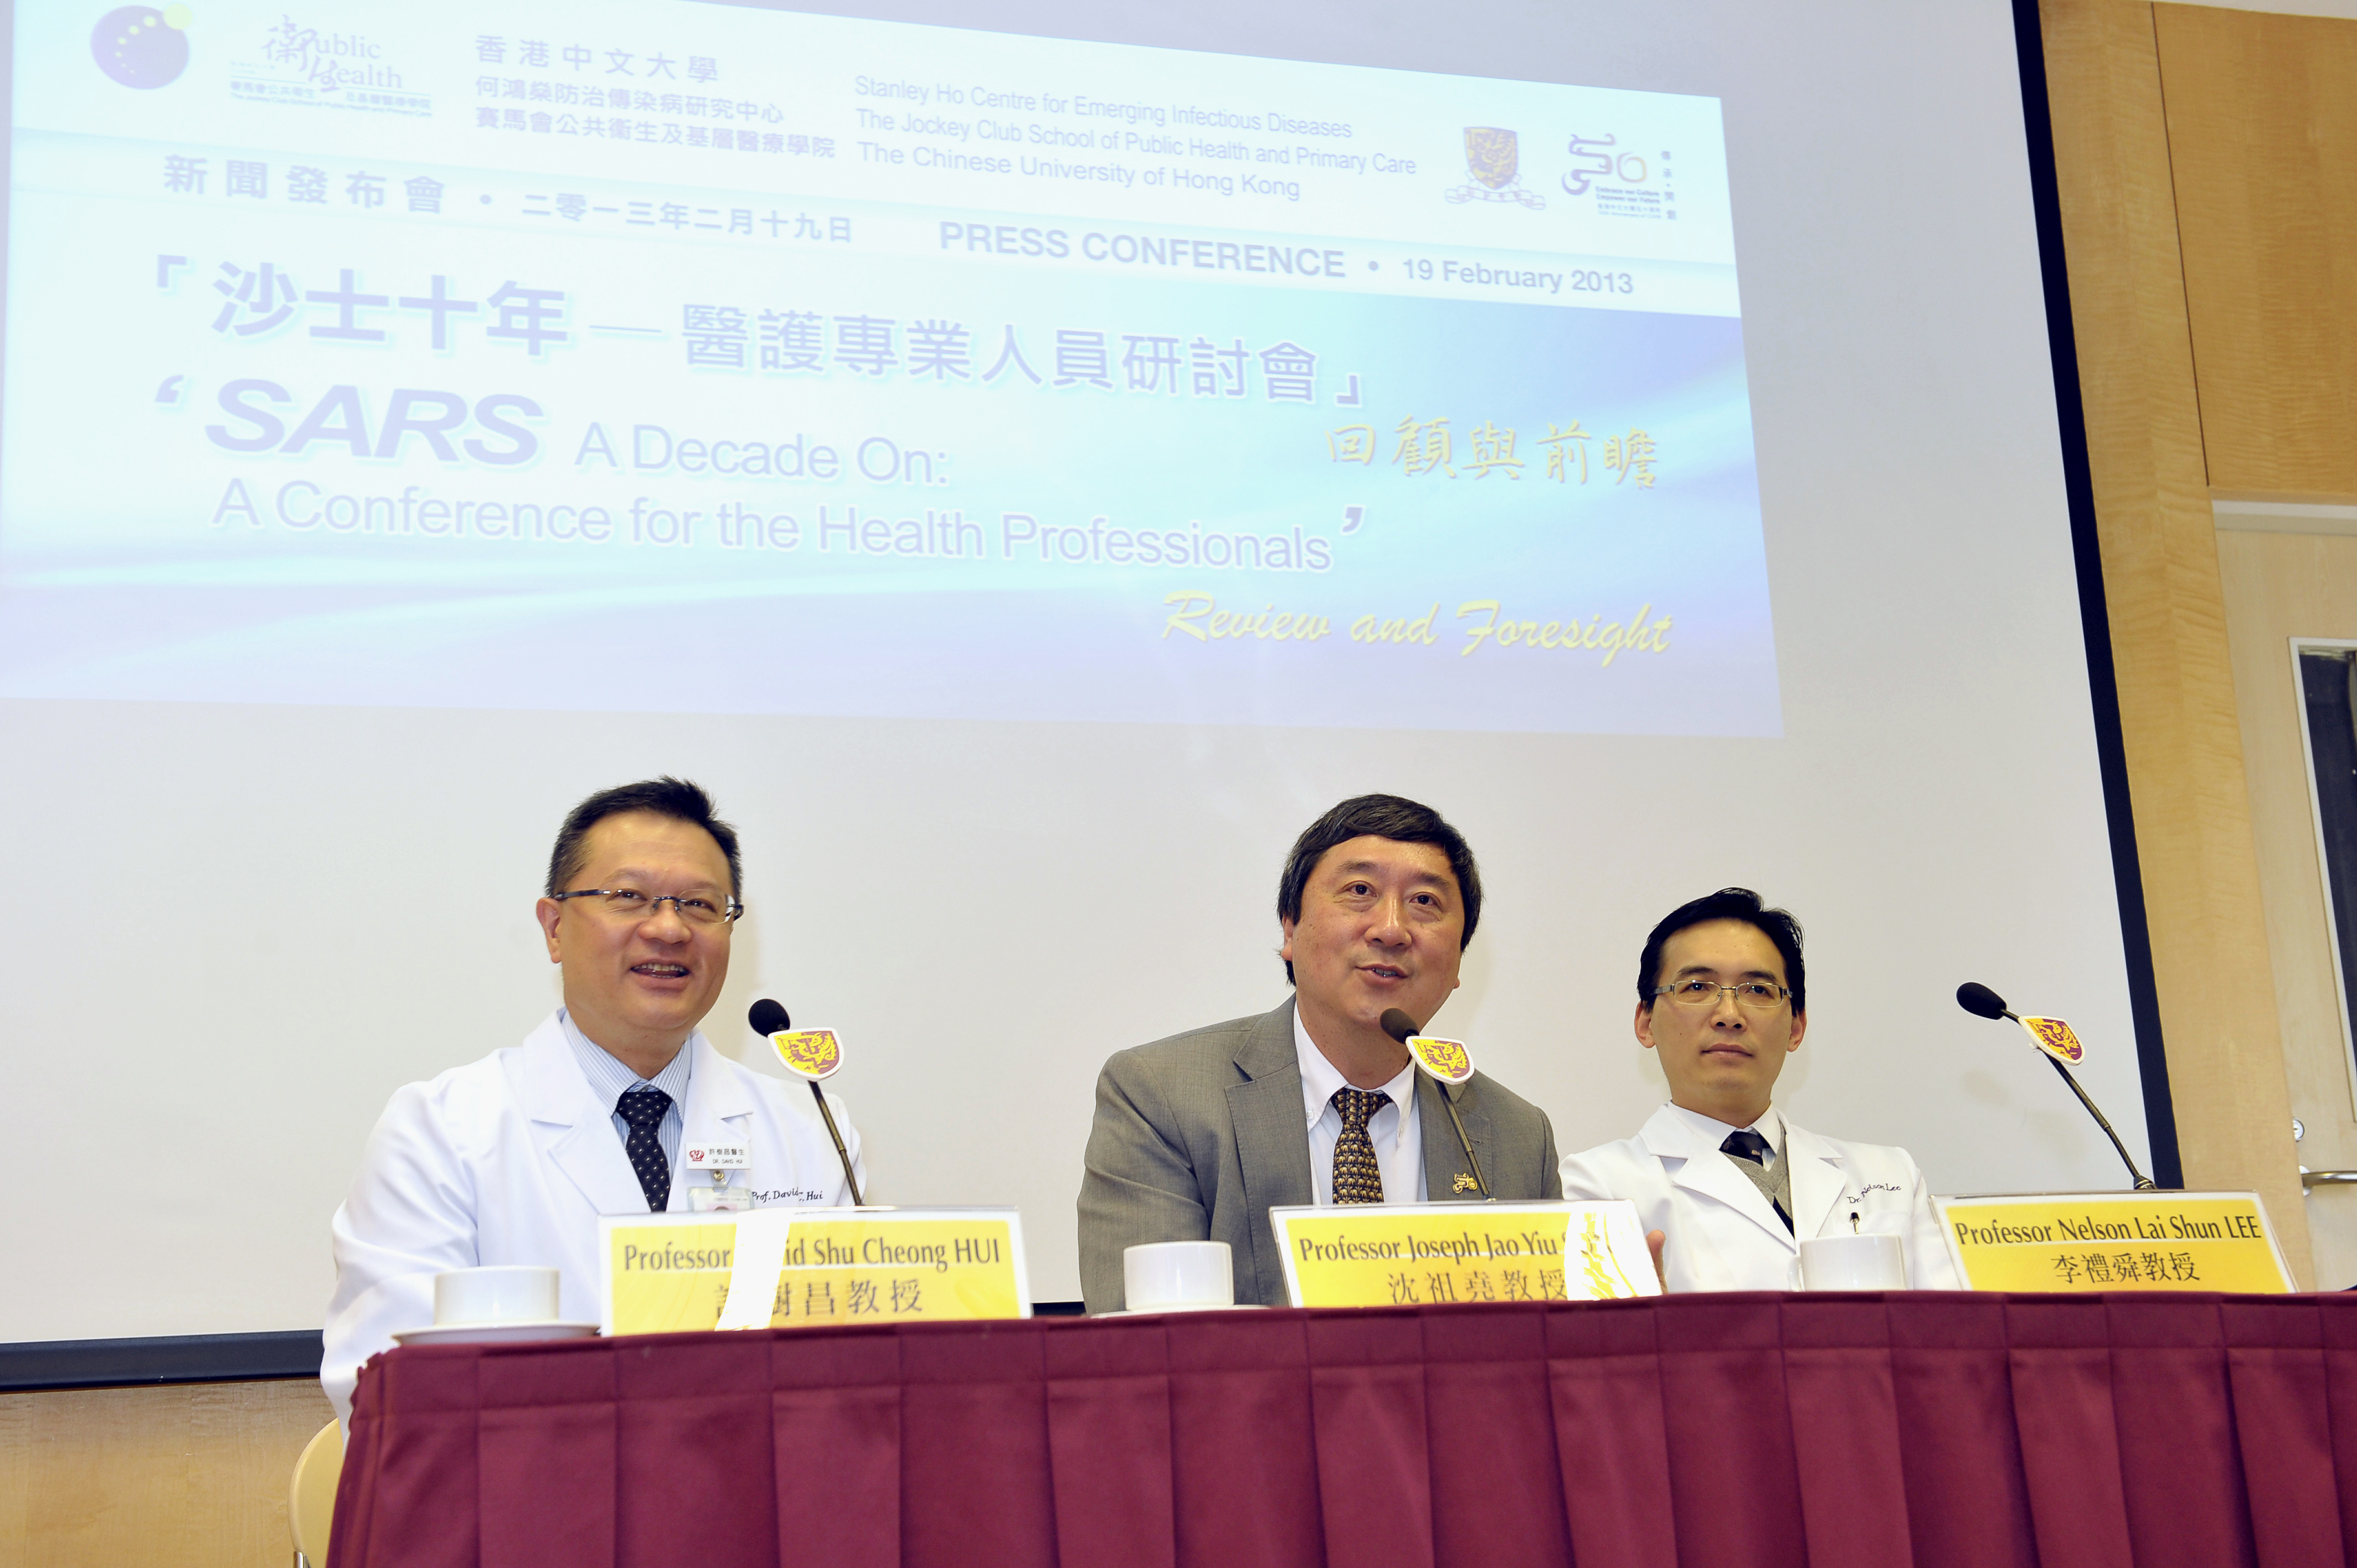 (From left) Prof. David Shu Cheong HUI, Head, Division of Respiratory Medicine, Department of Medicine and Therapeutics; Director, Stanley Ho Centre for Emerging Infectious Diseases, The Jockey Club School of Public Health and Primary Care at CUHK; Prof. Joseph J.Y. Sung, Vice-Chancellor and Mok Hing Yiu Professor of Medicine, CUHK; and Prof. Nelson Lai Shun LEE, Head of Division of Infectious Diseases, Department of Medicine and Therapeutics at CUHK